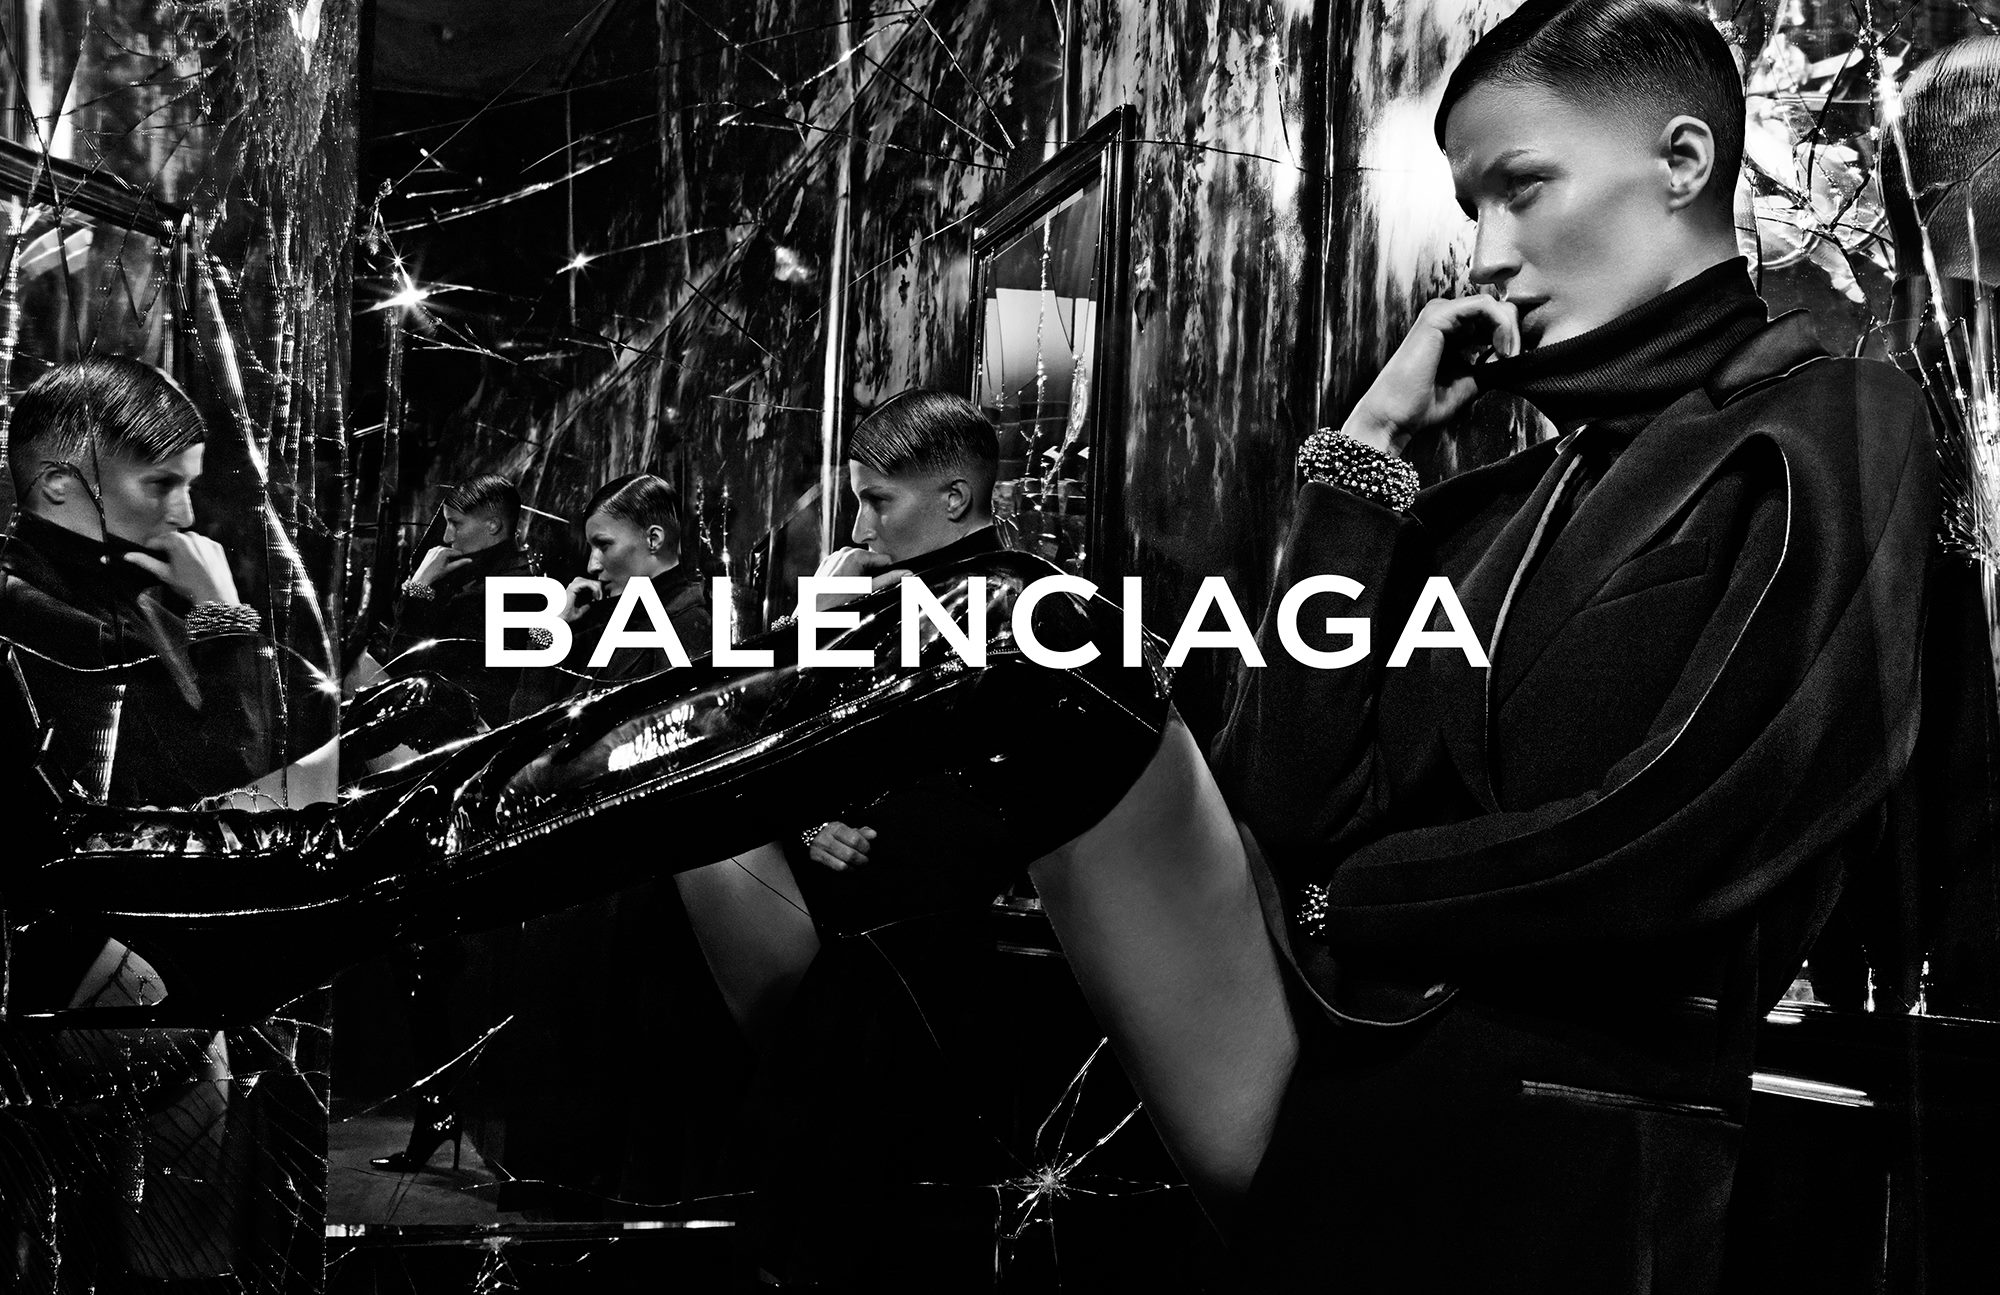 gisele-bc3bcndchen-by-steven-klein-for-balenciaga-fall-winter-2014-20151